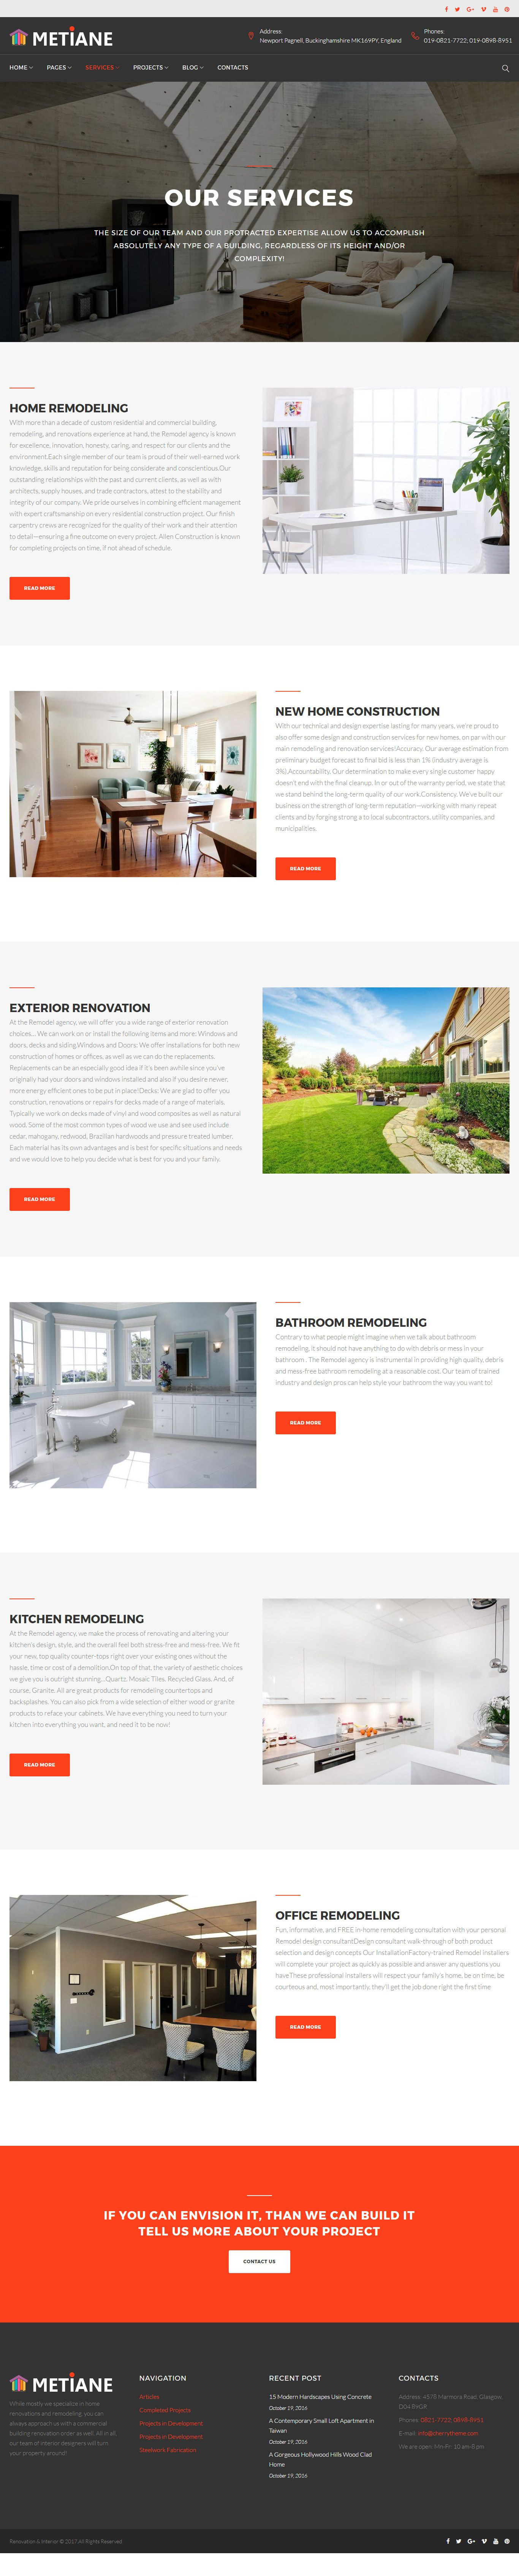 Metiane - Interior Design Wordpress Theme Screenshot 7